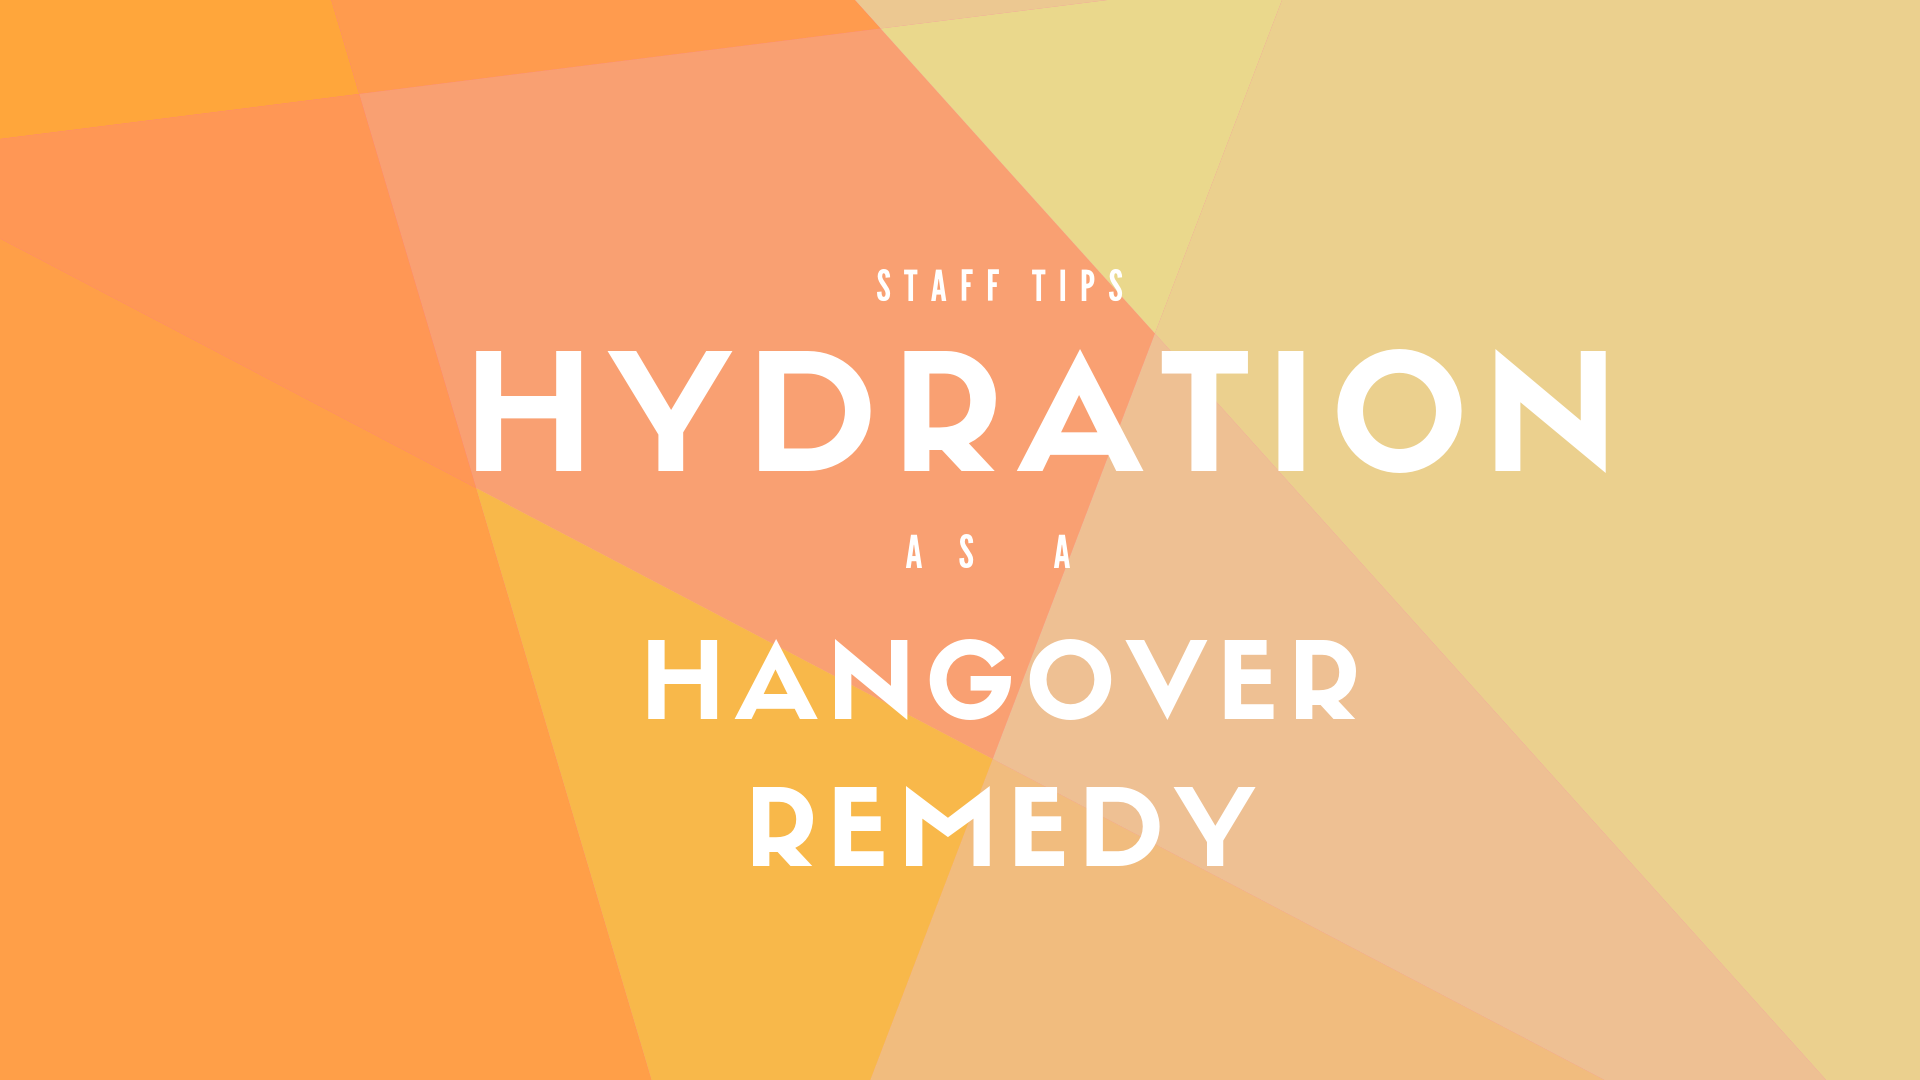 Hydration as Hangover Remedy